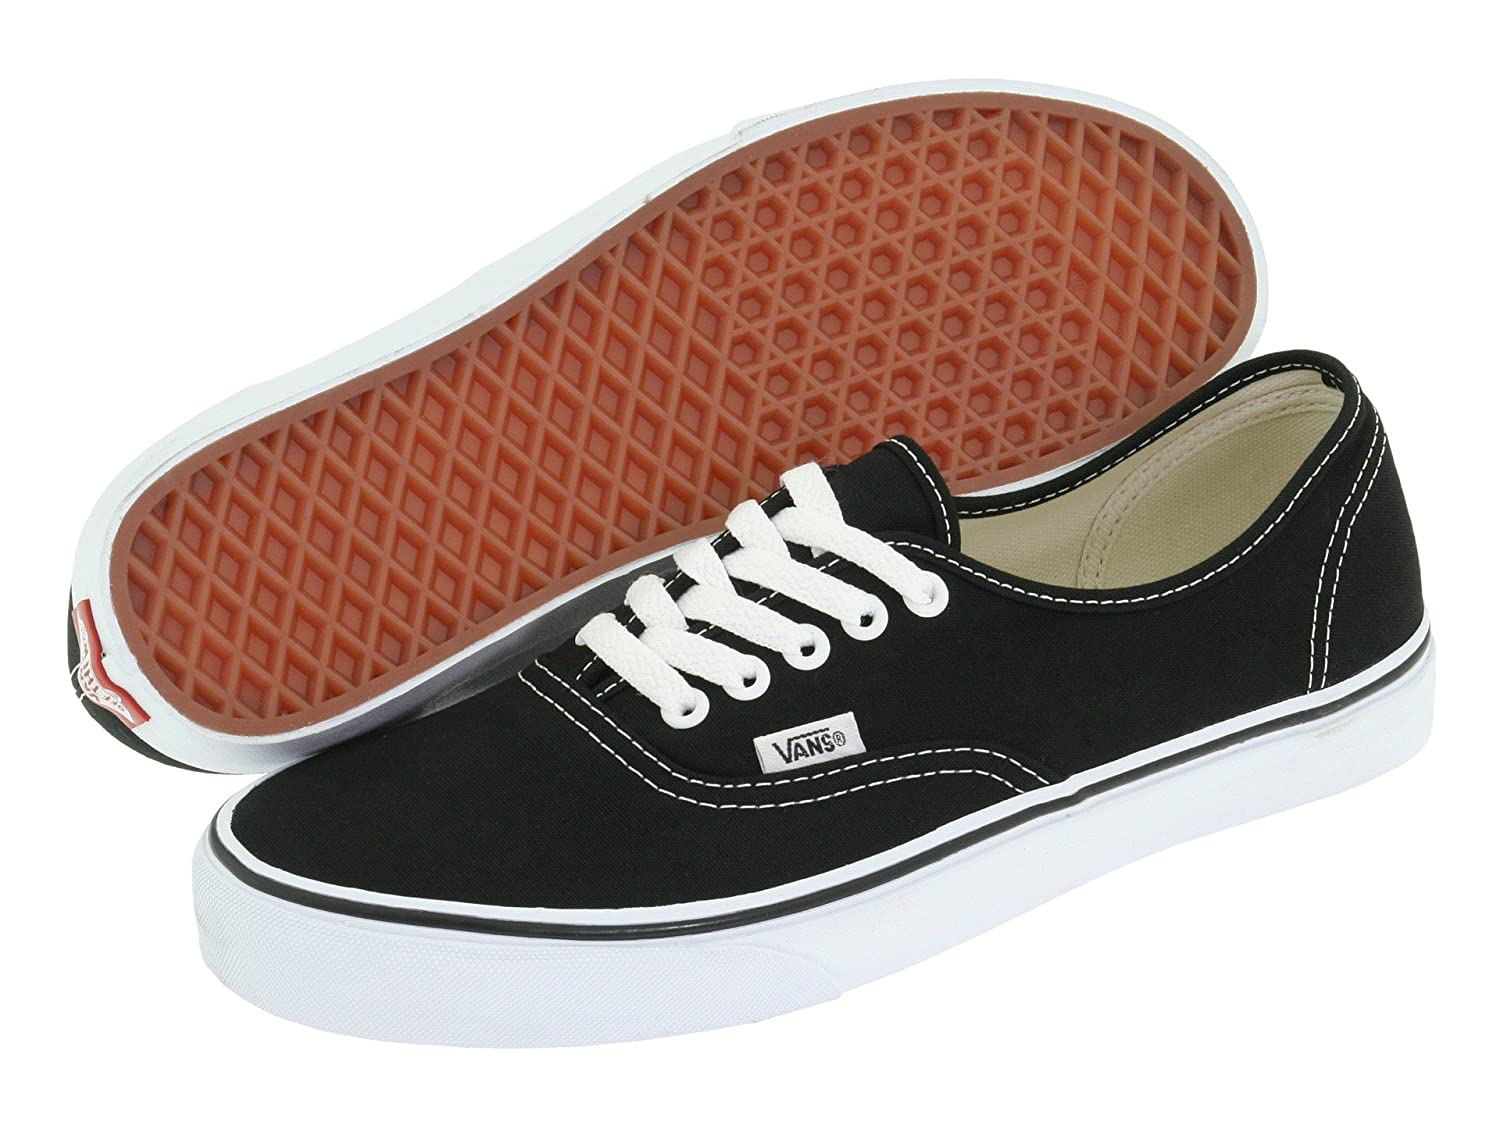 [バンズ] スニーカー Women's AUTHENTIC (Pig Suede) VN0A38EMU5O レディース B0771WP8YK Black./White 14 M US 14 M US|Black./White